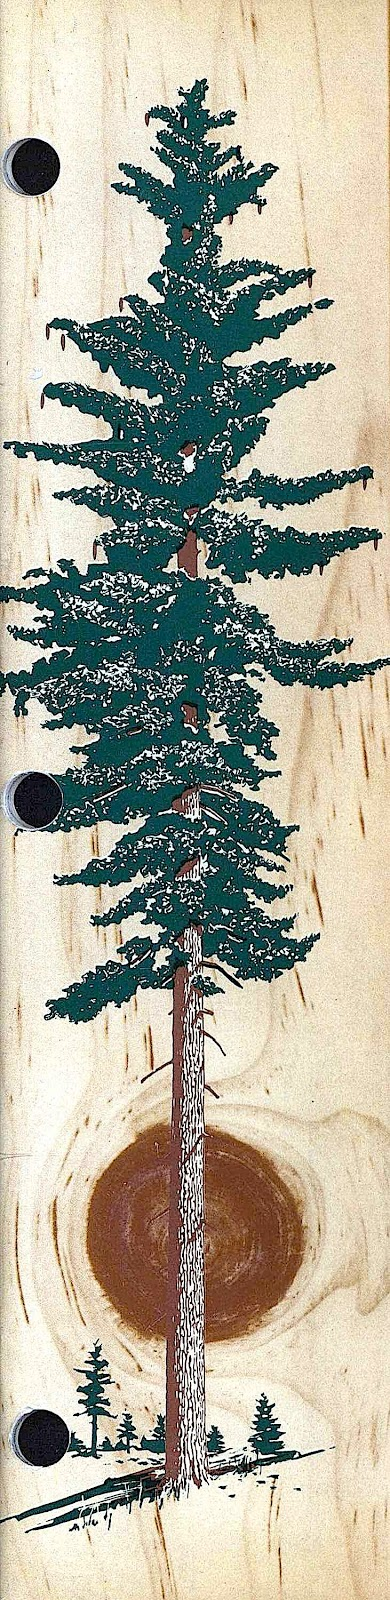 1955 tree illustration, wood on wood, tree on wood